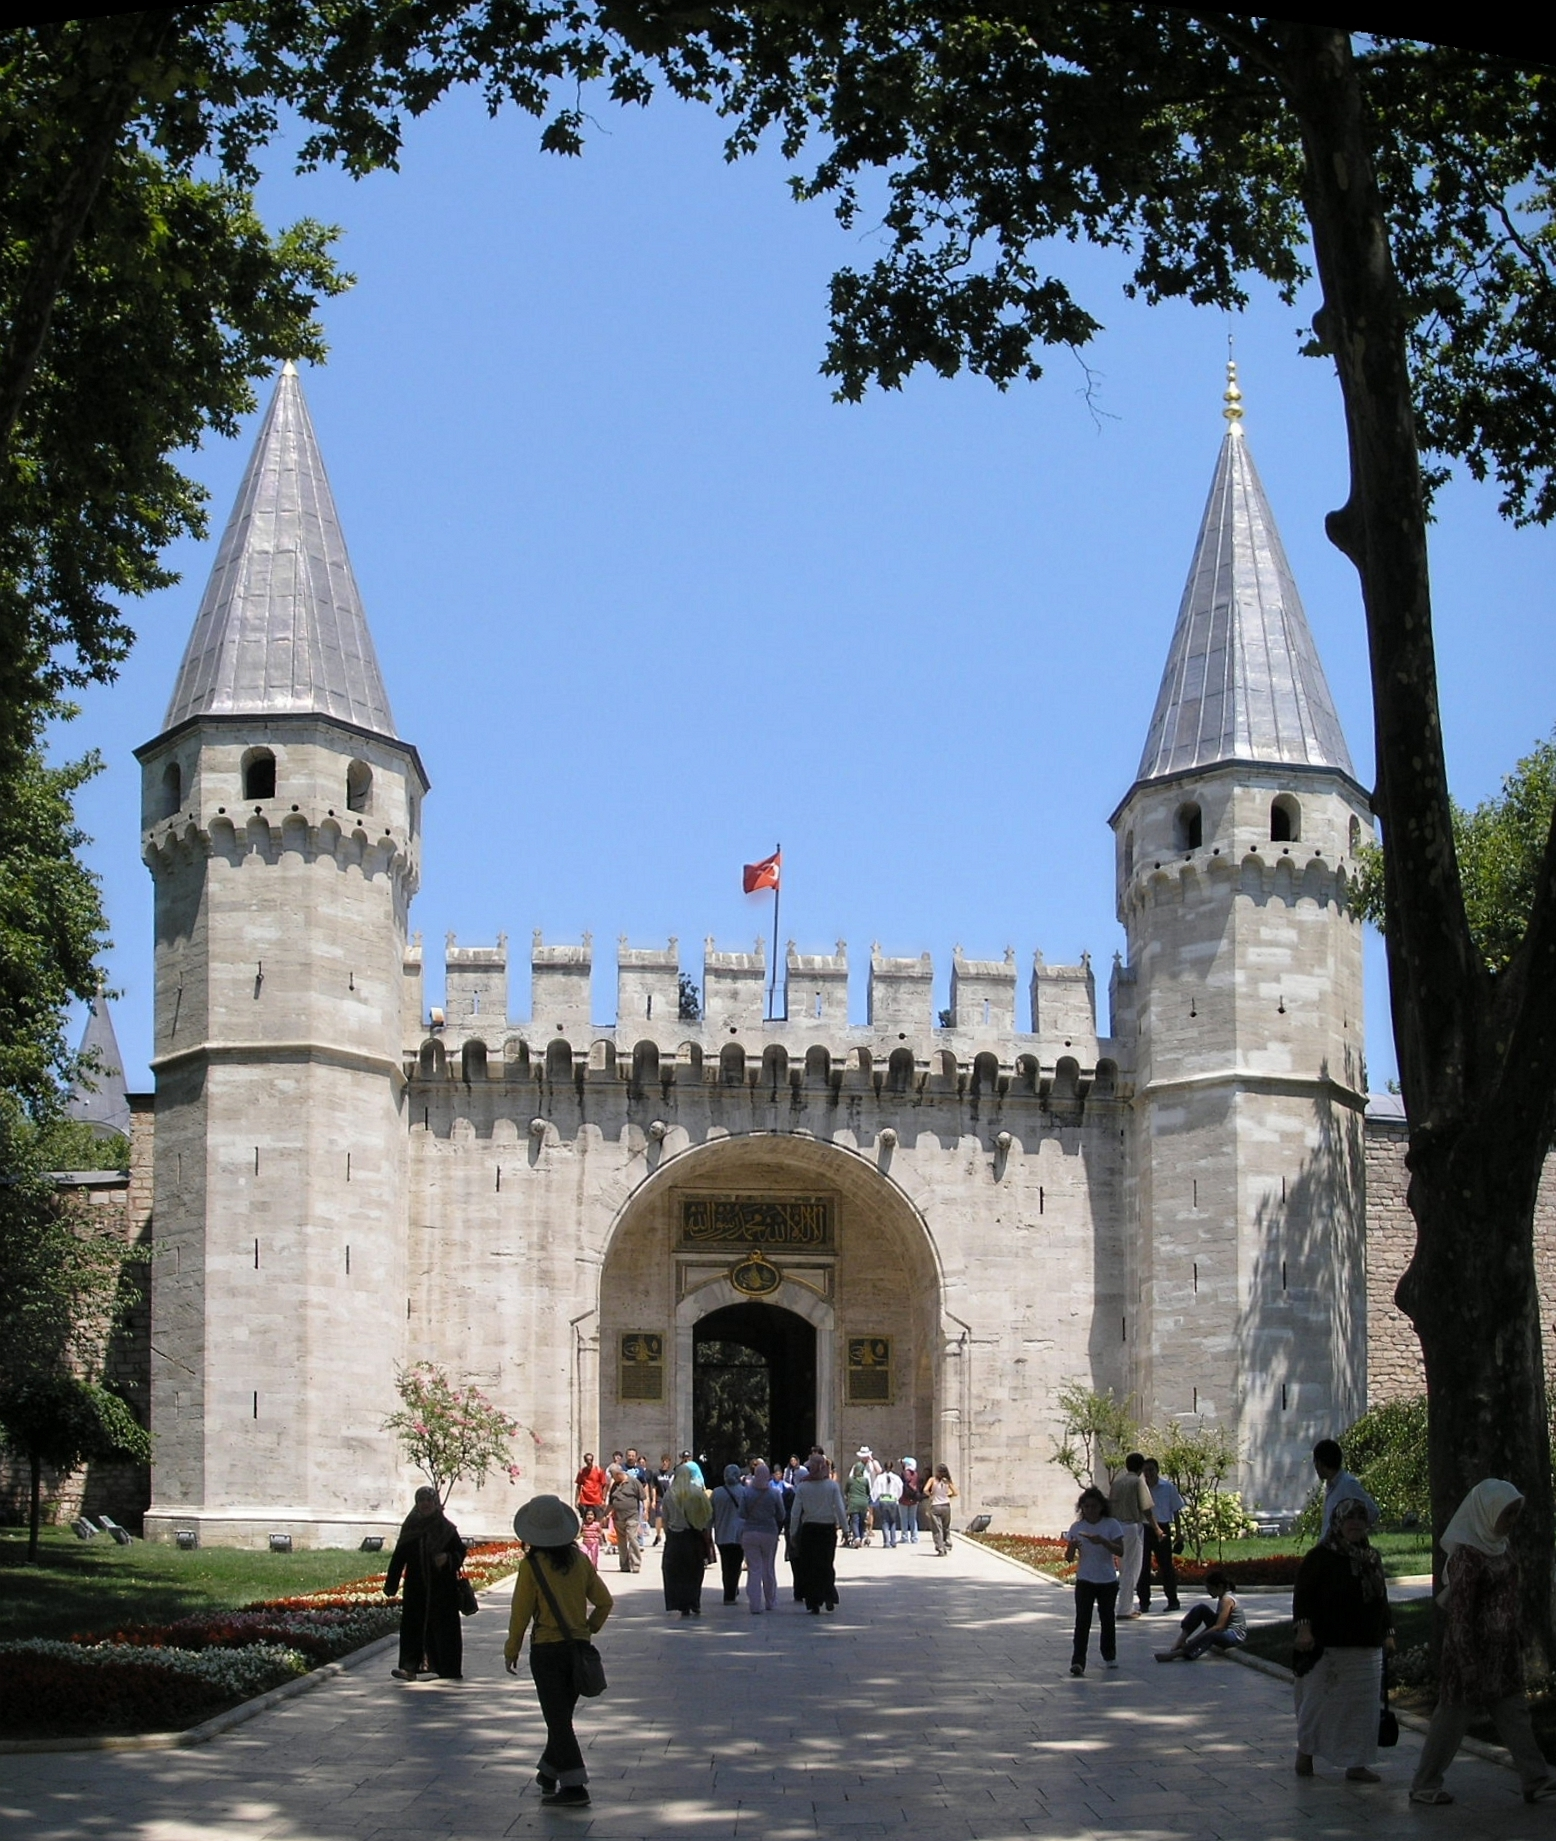 The Gate of Salutation, Topkapi Palace, Constantinople